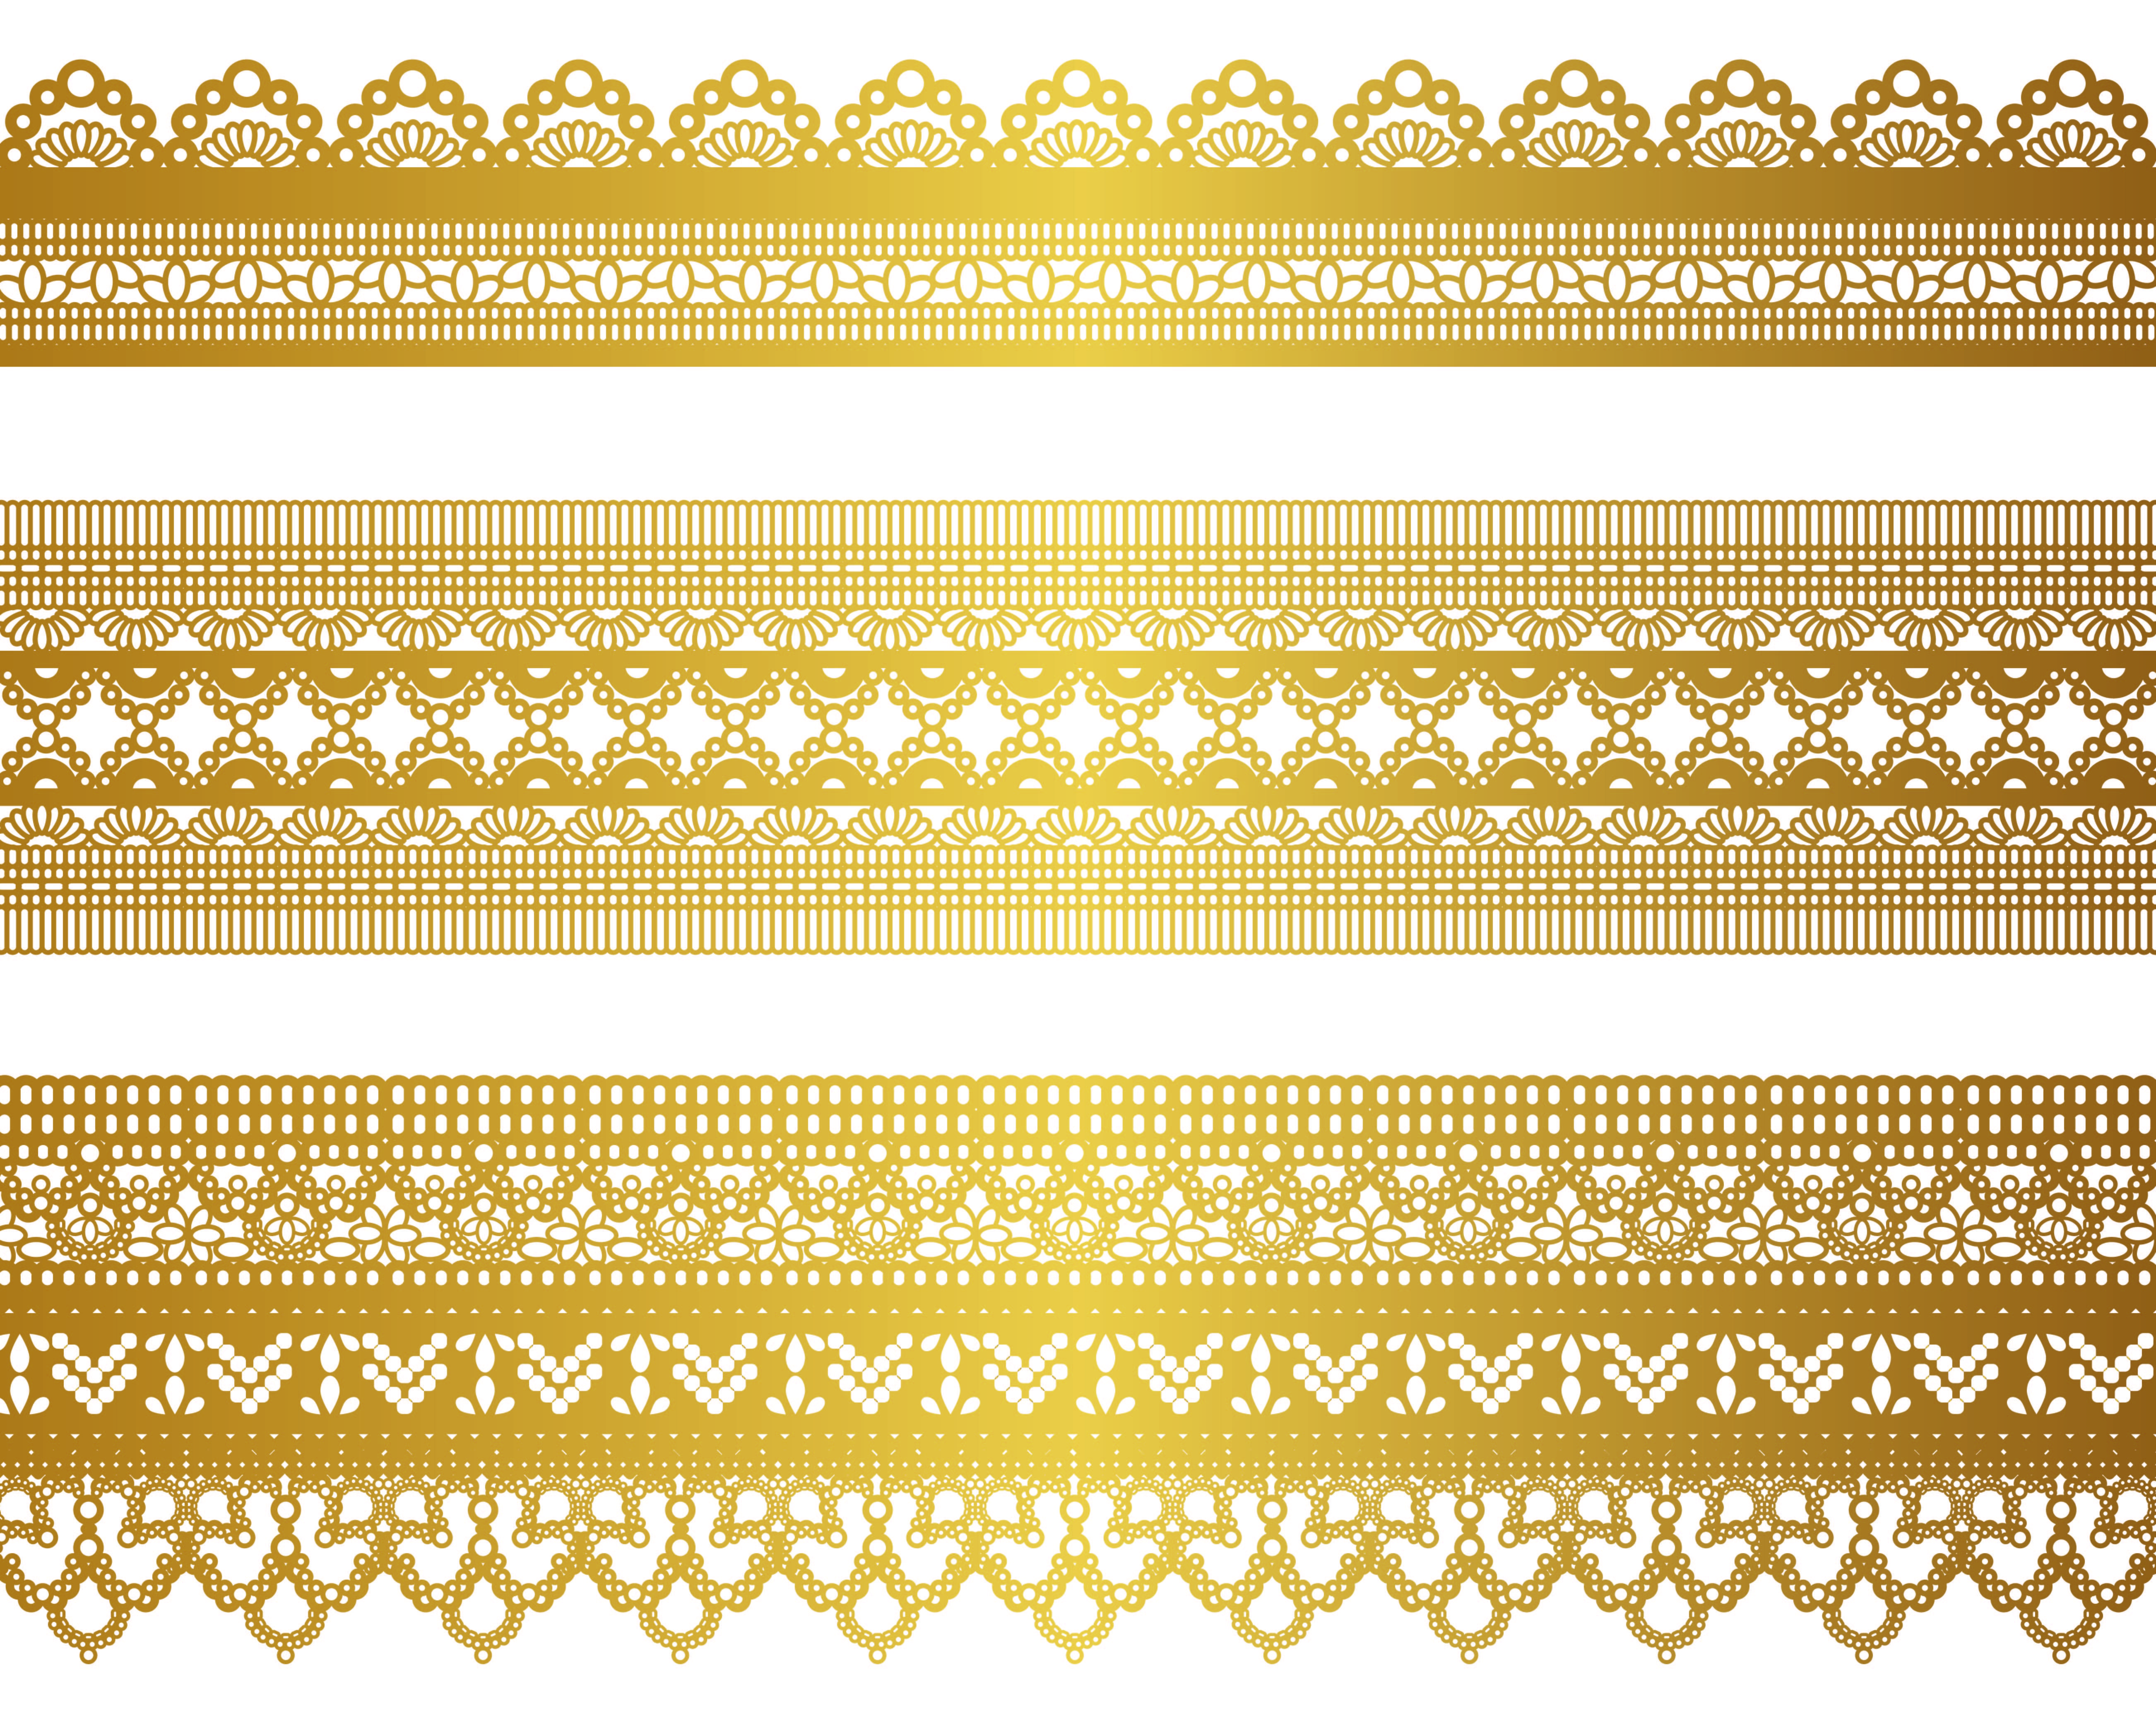 free vector gold lace pattern 04 vector vektor pinterest gold